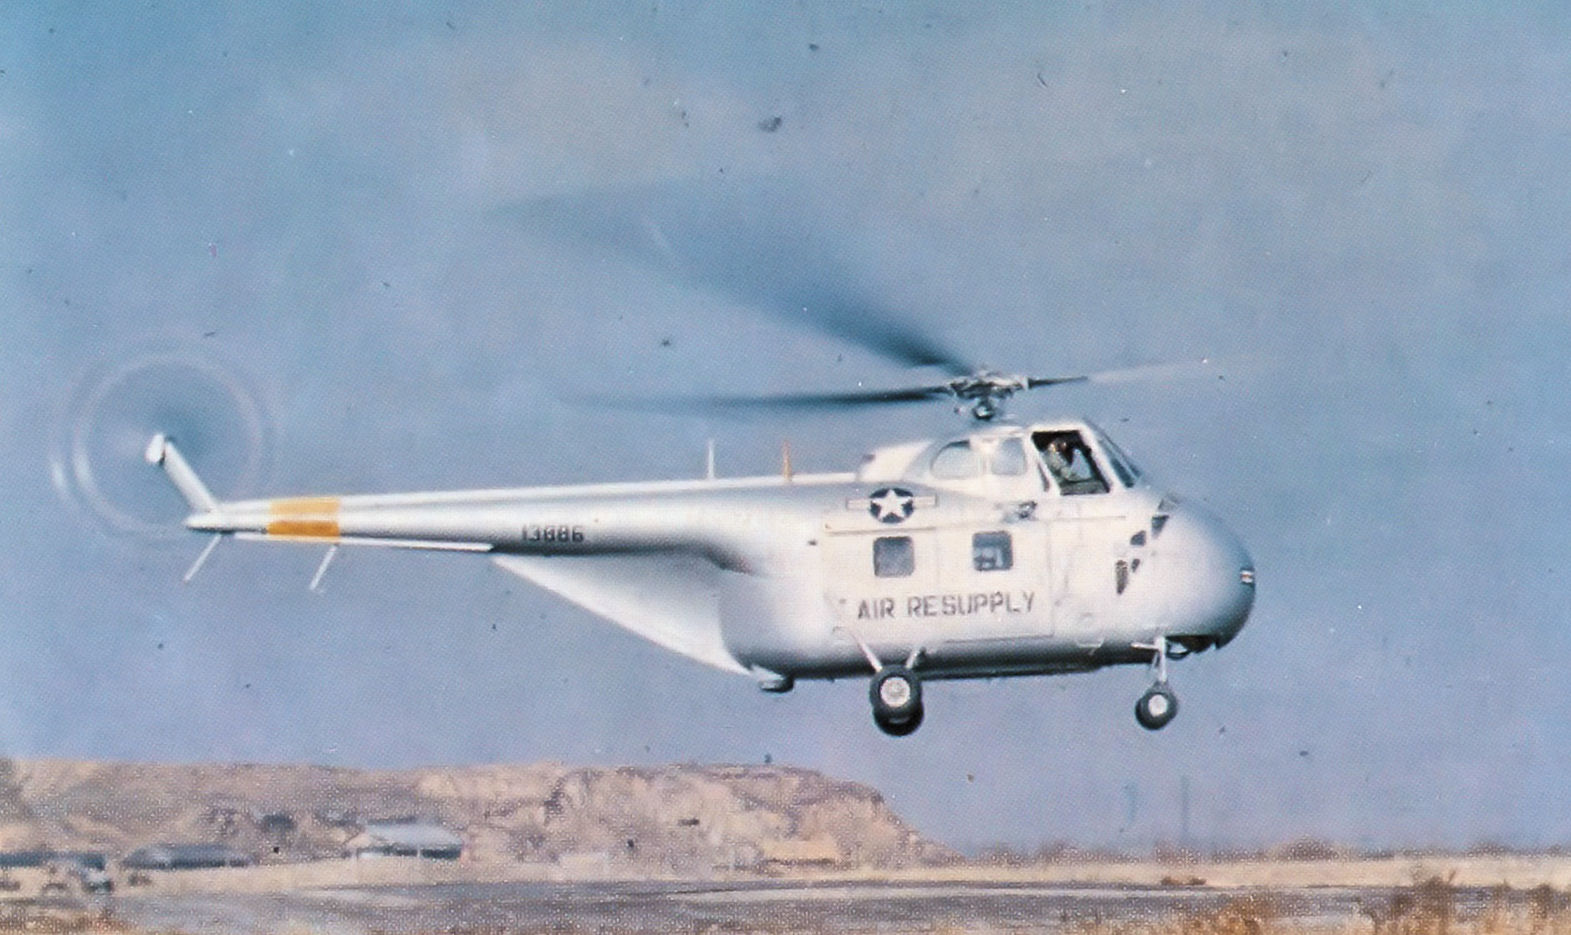 helicopter research with File 581st Air Resupply And  Munications Wing H 19 on Terrafugia Aims Launch Flying Car 2019 Following Takeover Geely additionally Overview Dubai Hospital Dubai Review furthermore Fish eagle furthermore MysteriousPlaces likewise Biomimicry Enhances Architecture.